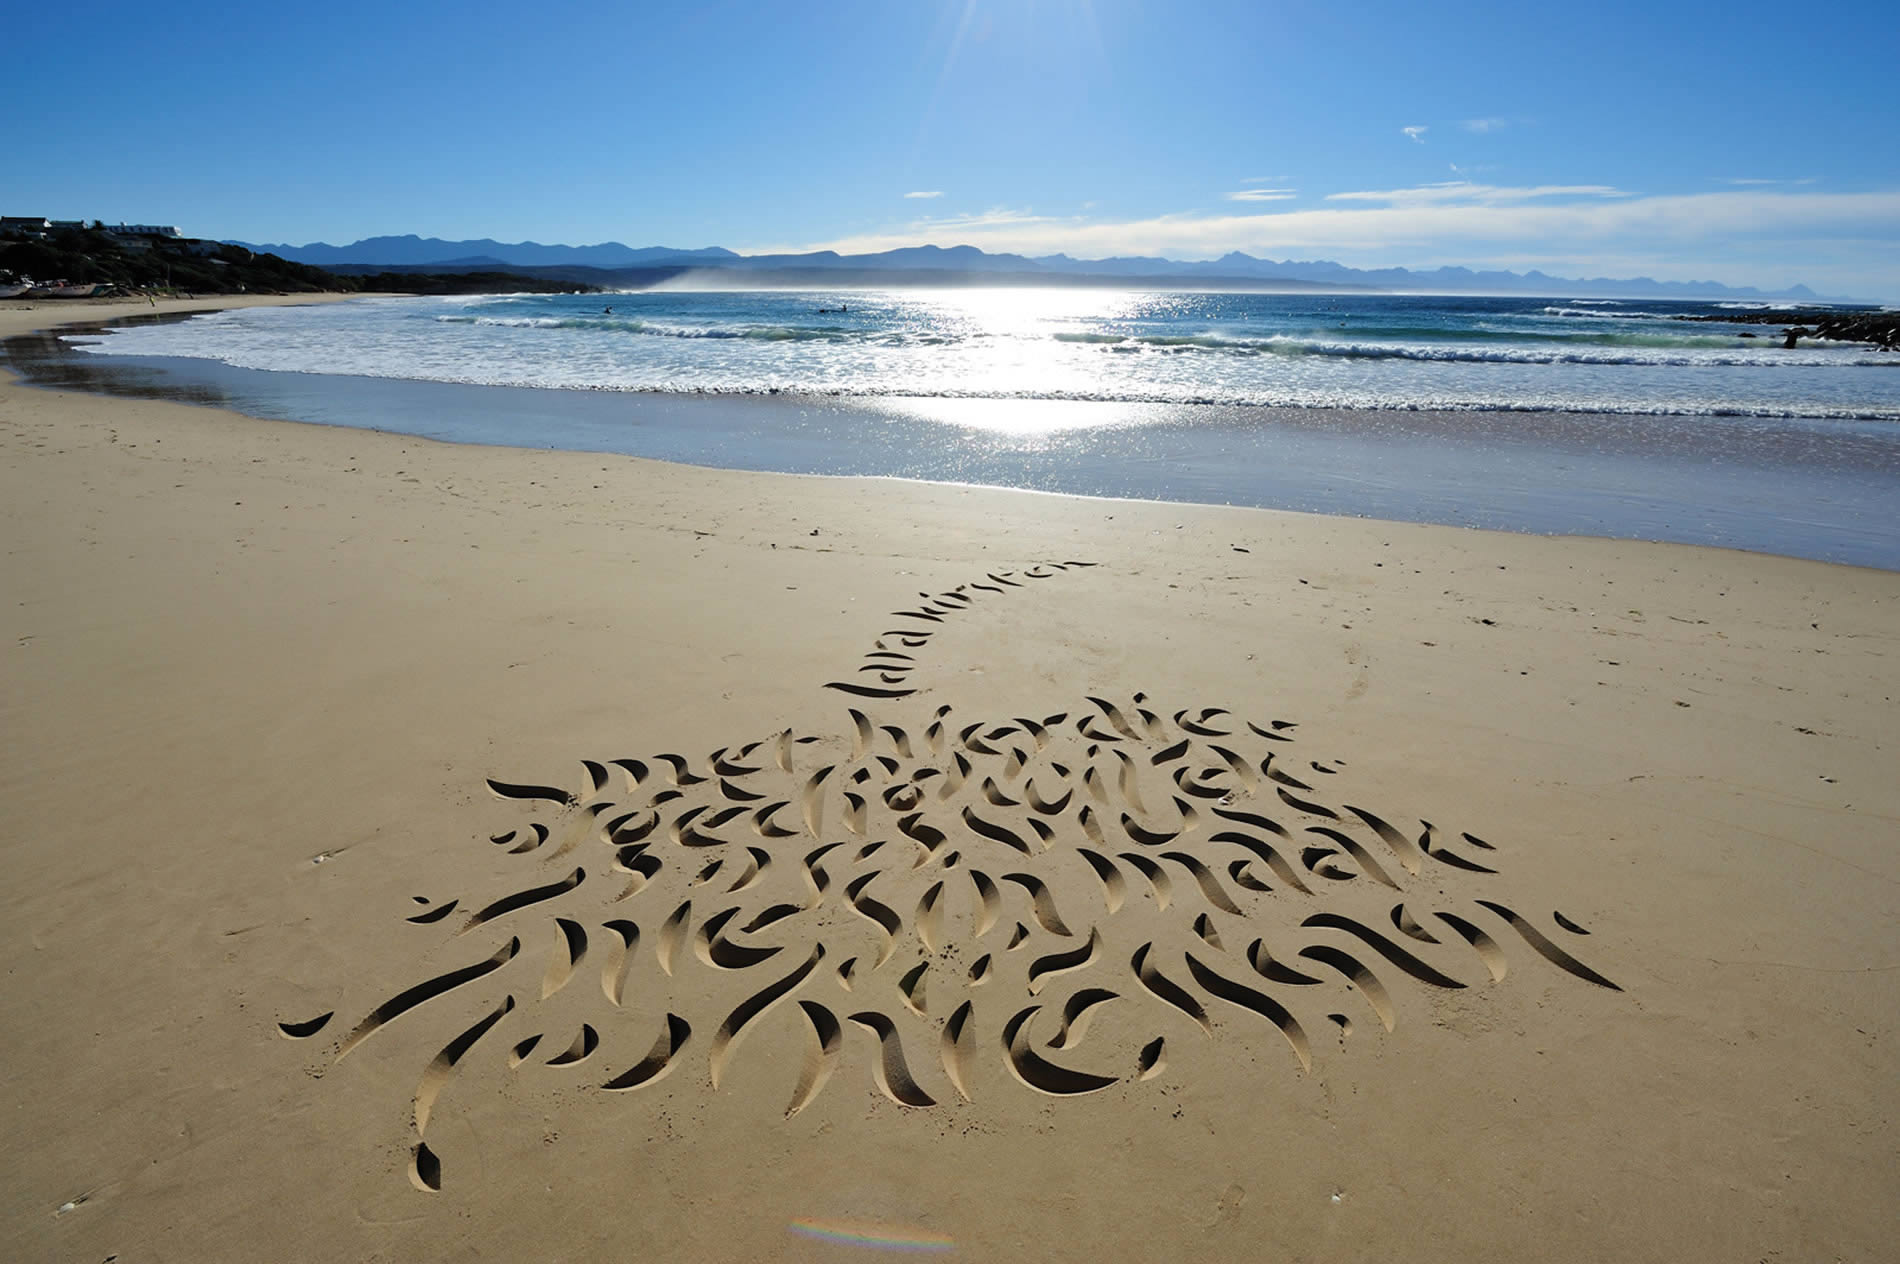 Doodles and Calligraphy on Beaches